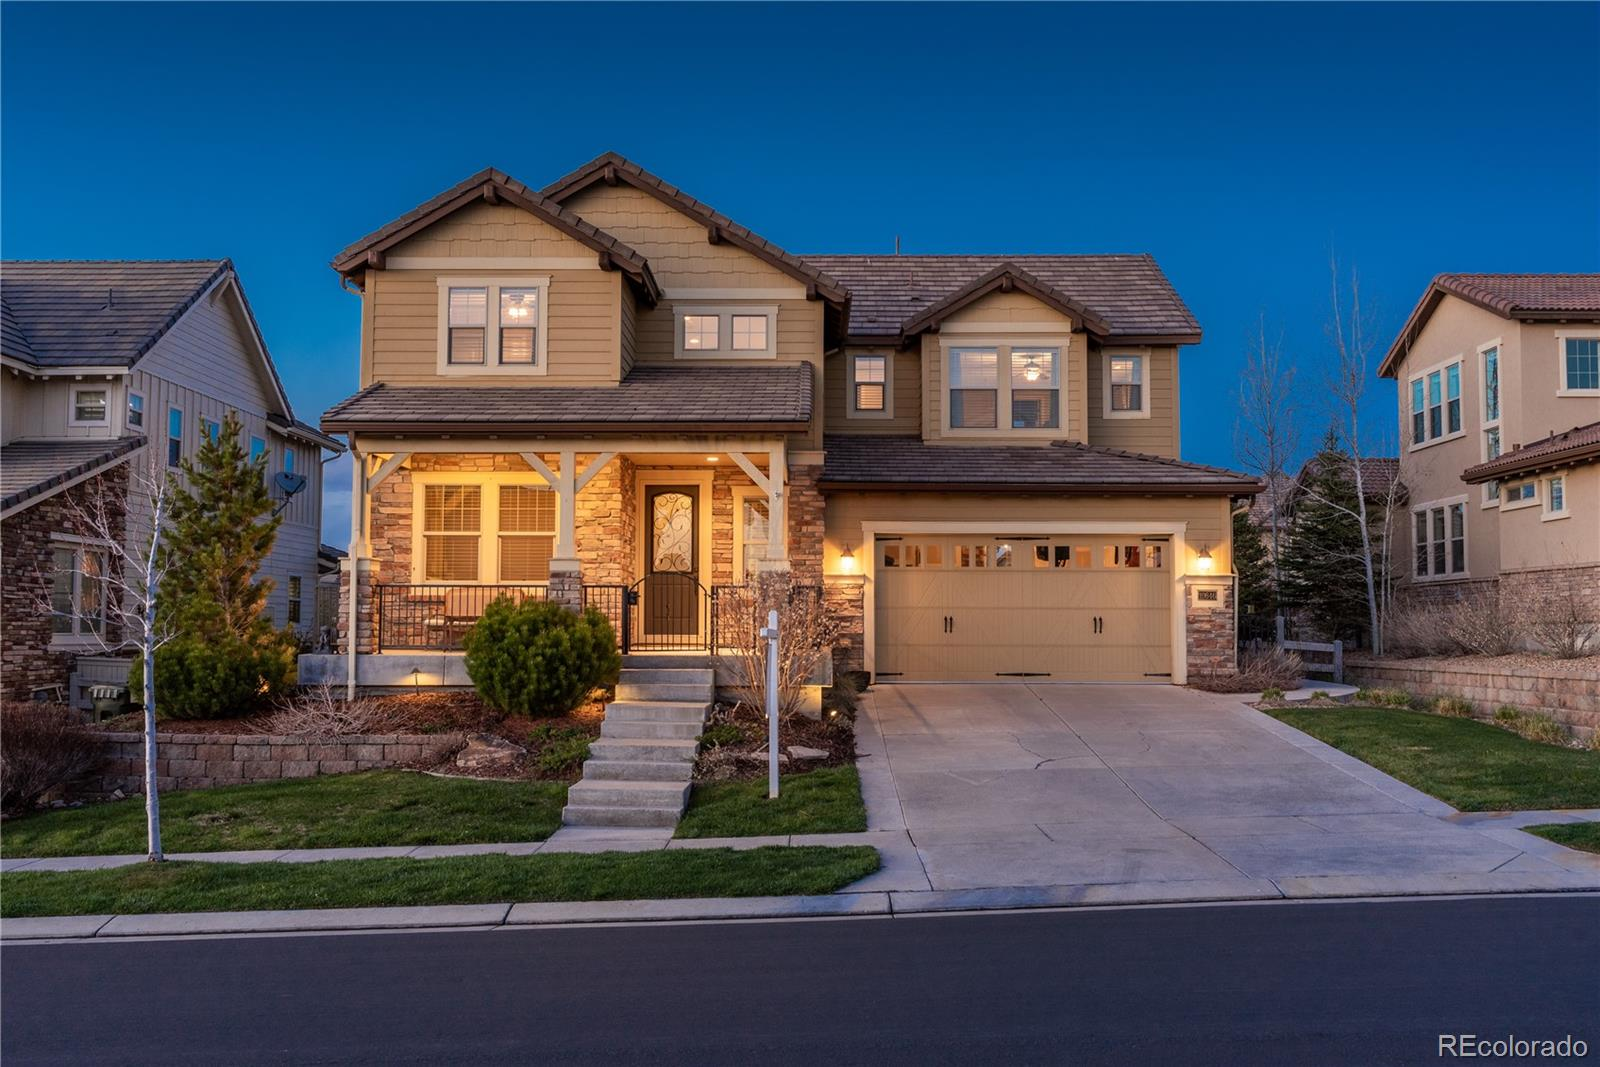 10646 Sundial Rim Road, Highlands Ranch, CO 80126 - Highlands Ranch, CO real estate listing